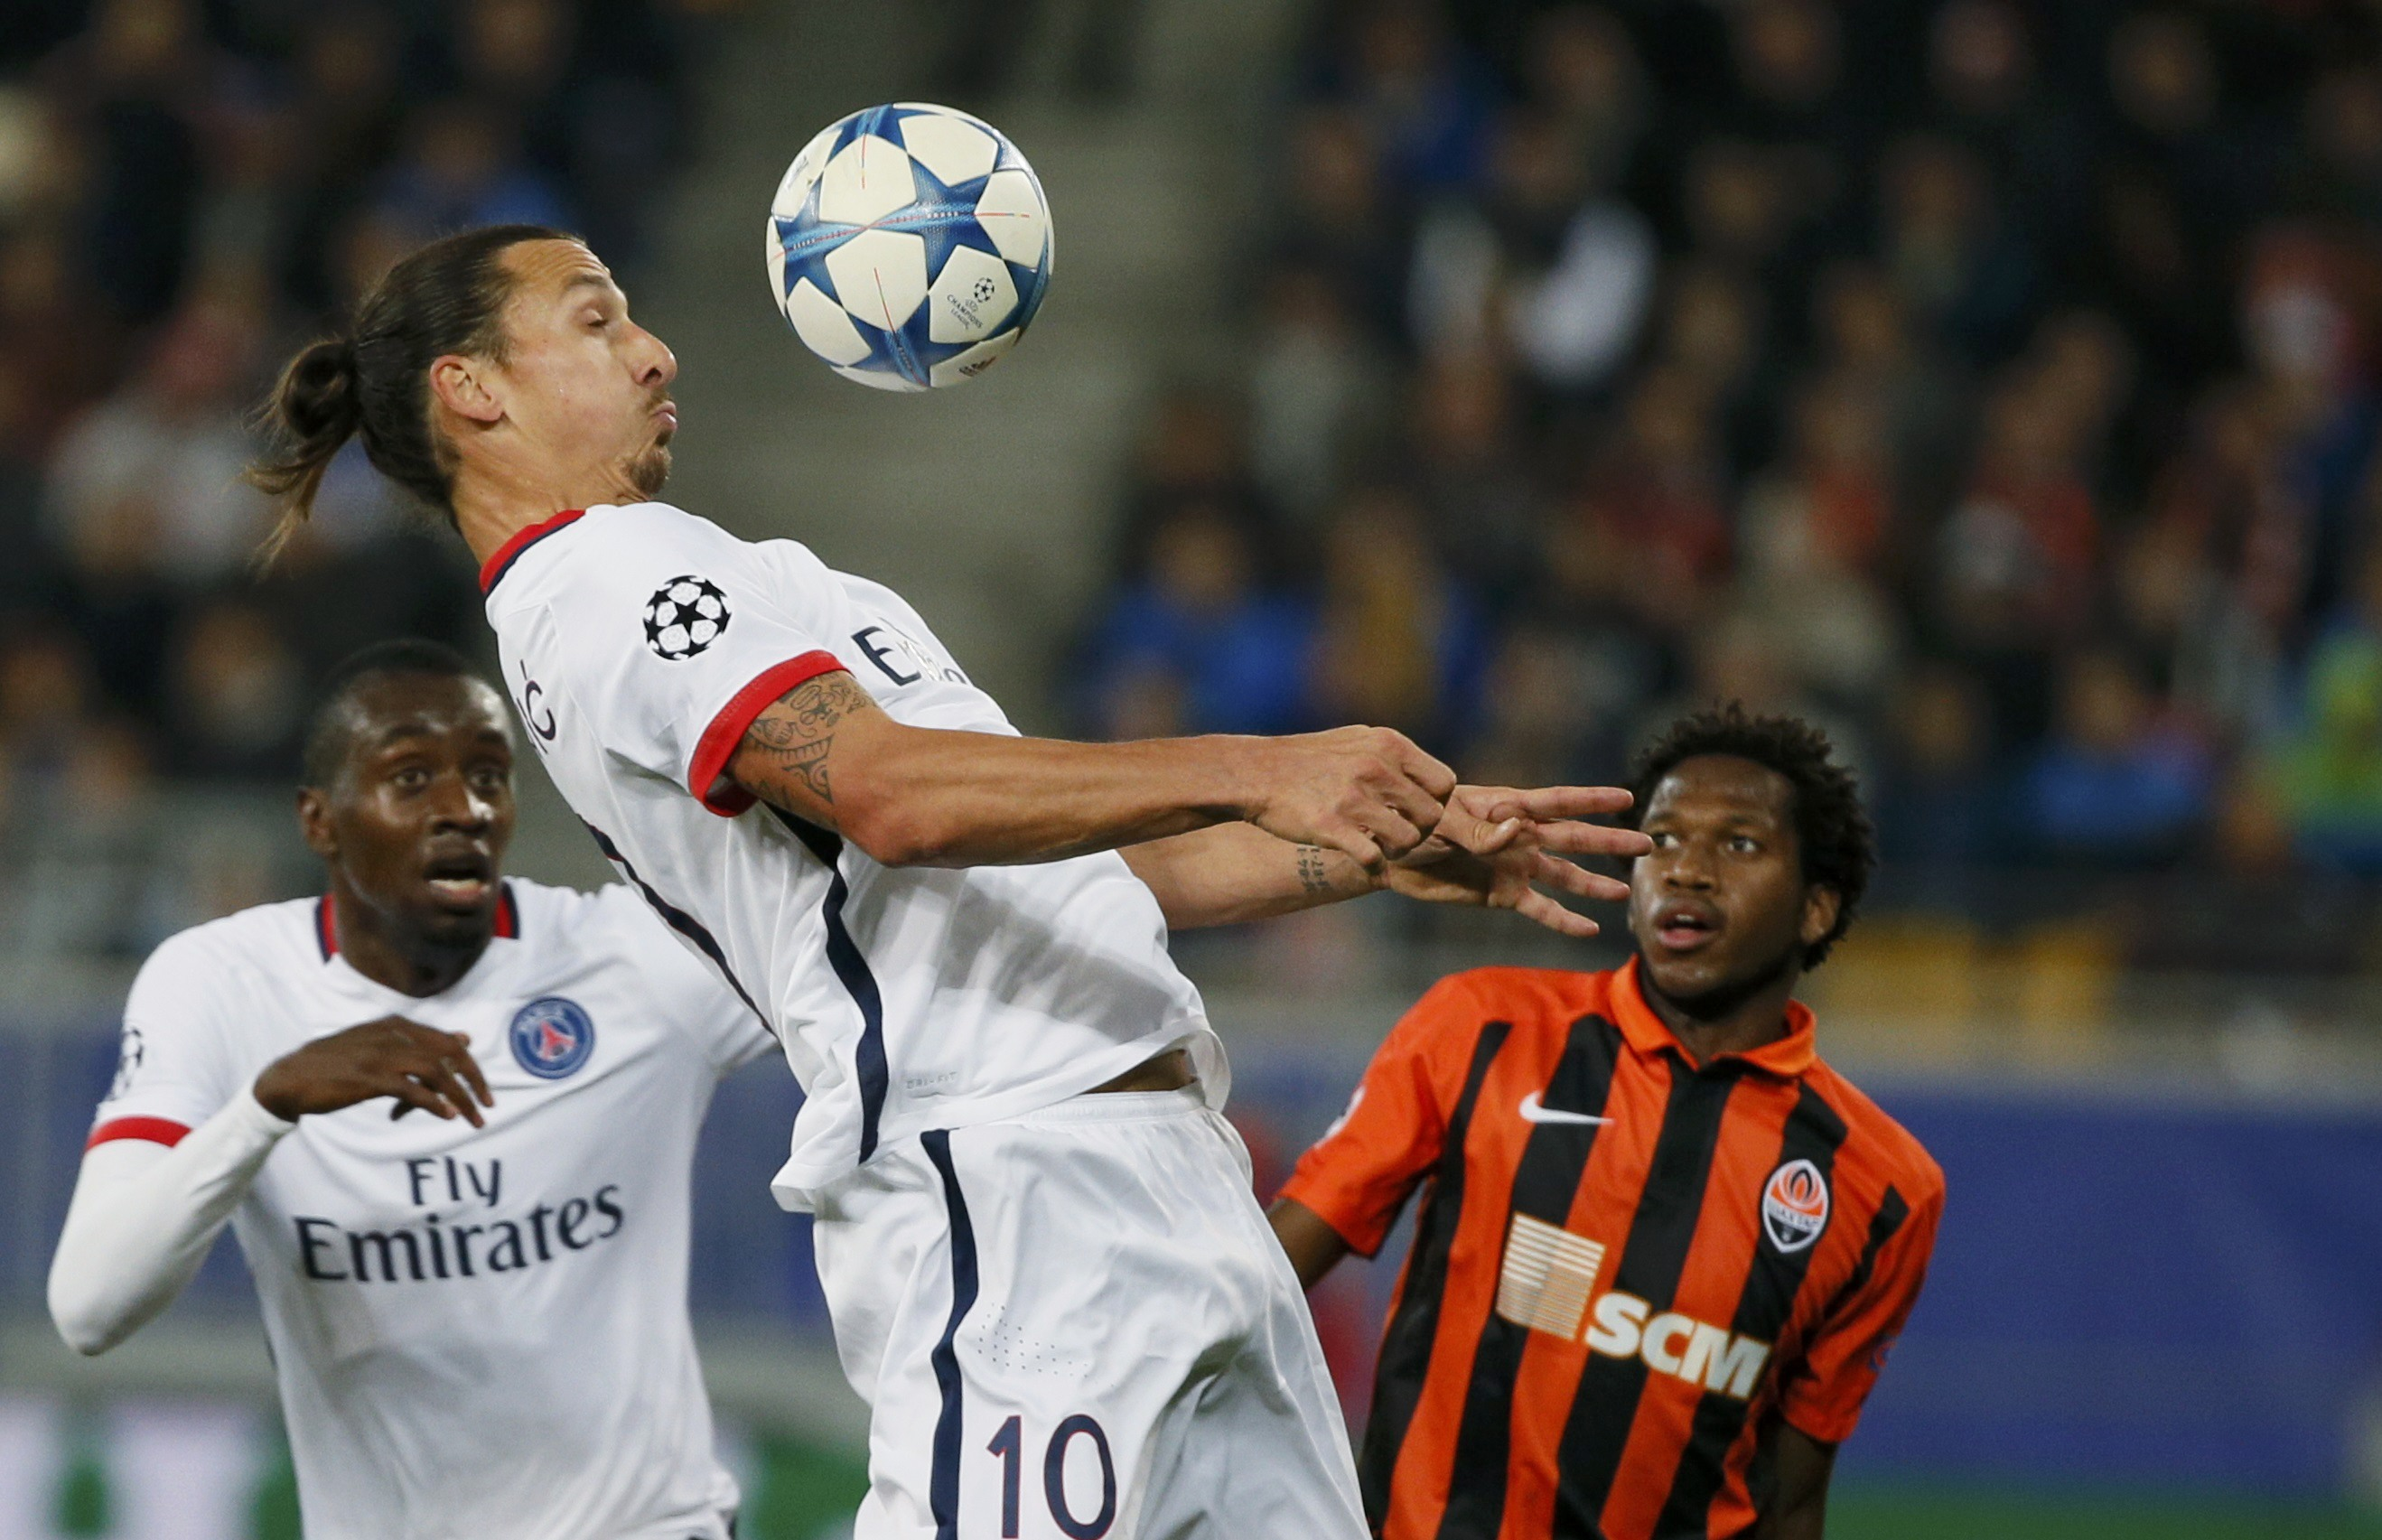 Paris St Germain's Zlatan Ibrahimovic (C) jumps for the ball past his team mate Blaise Matuidi (L) and Shakhtar Donetsk's Fred during their Champions League group A soccer match at the Arena Lviv stadium in Lviv, Ukraine, September 30, 2015. REUTERS/Gleb Garanich